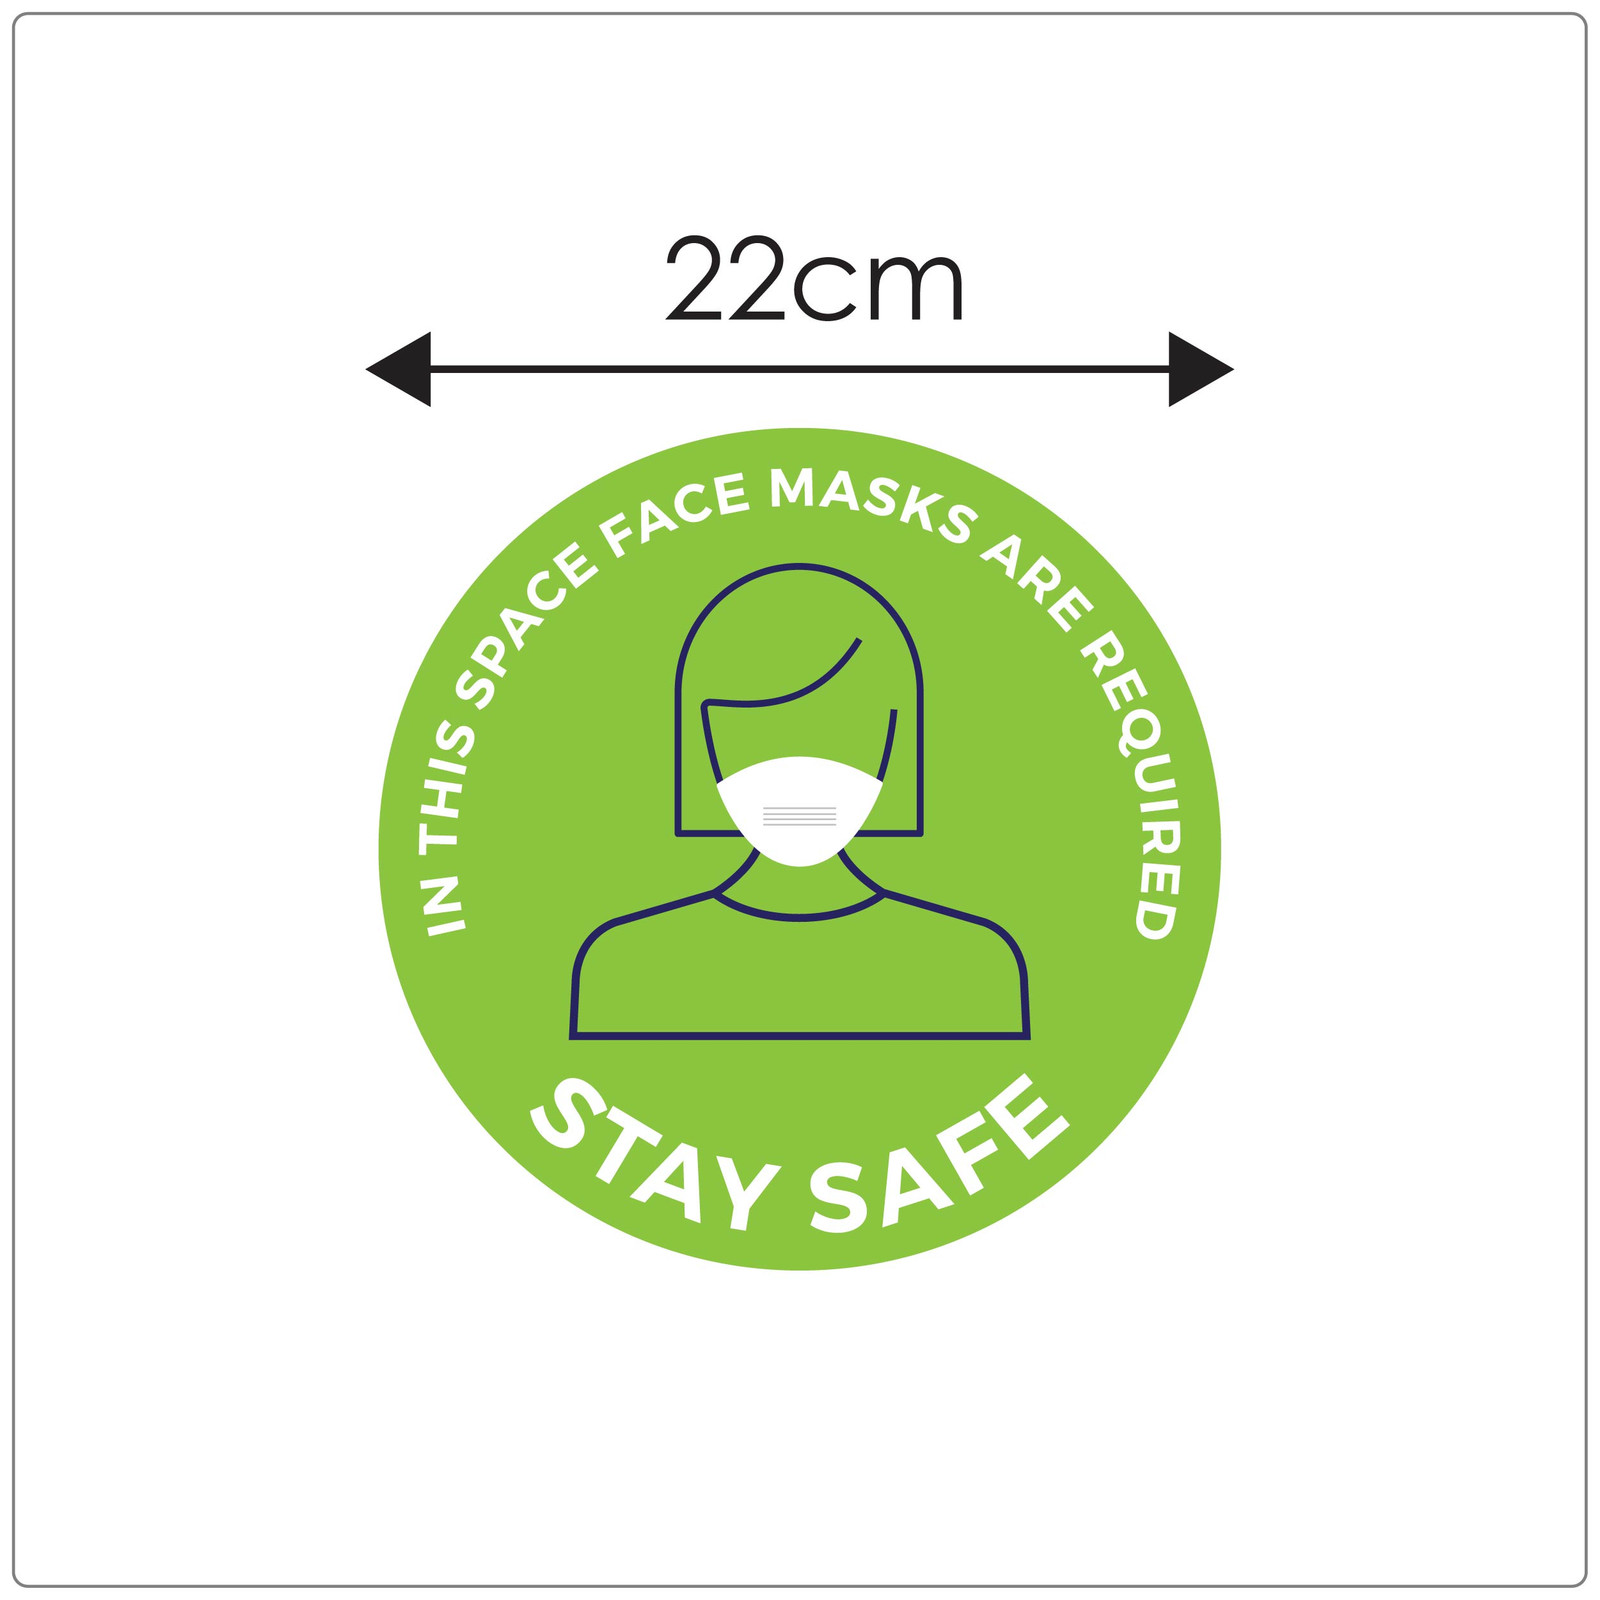 COVID mask sticker,  green, sizing Self-adhesive face mask sticker to encourage mask wearing.